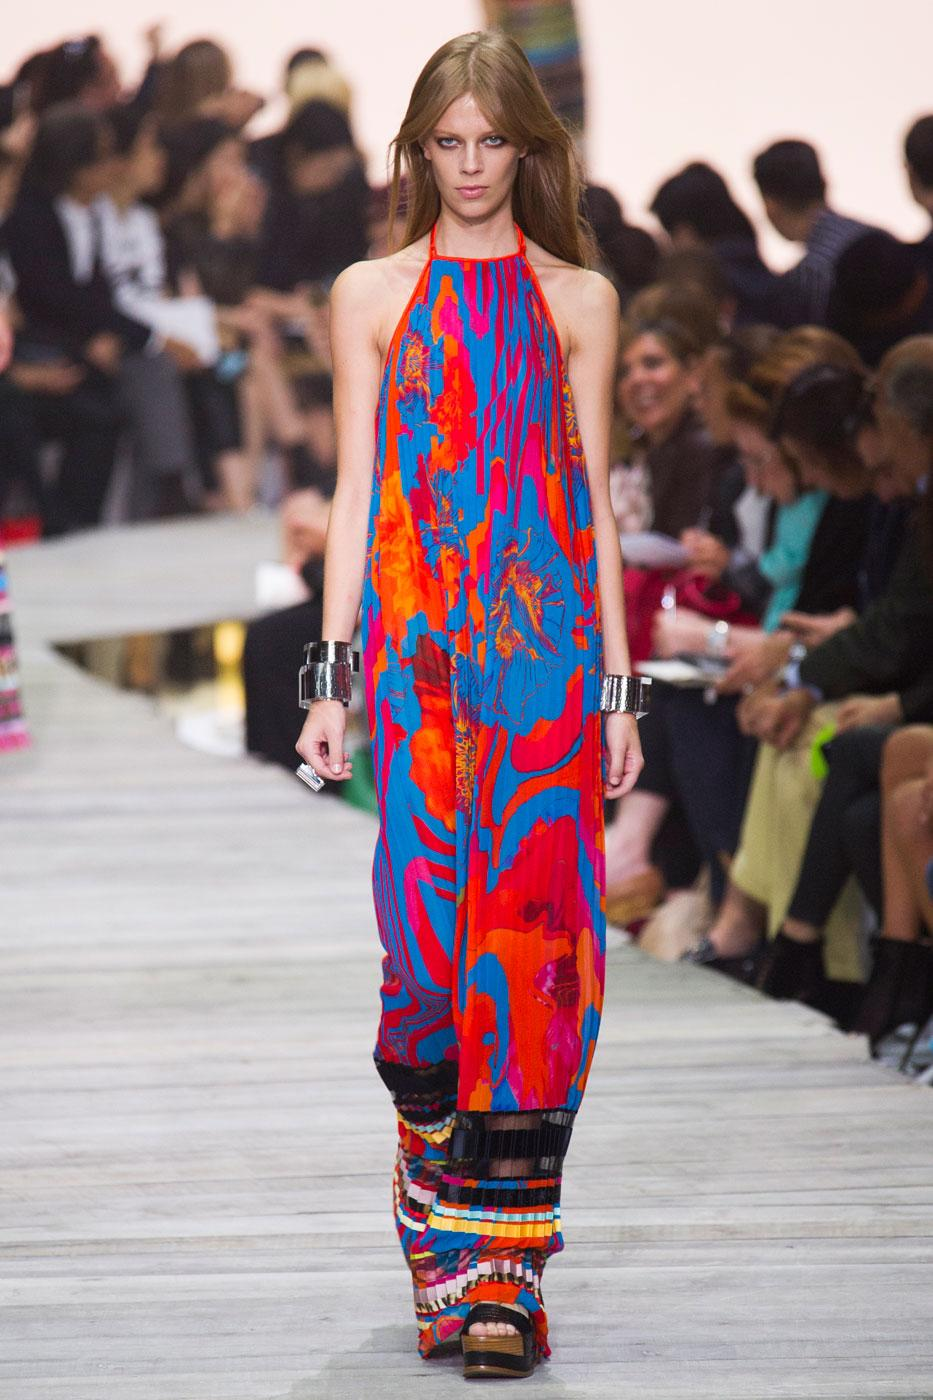 -@Roberto_Cavalli designs the ultimate summer holiday wardrobe for #SS15 http://t.co/QGMrzj1zM4 #MFW http://t.co/LBpmIeyqrm